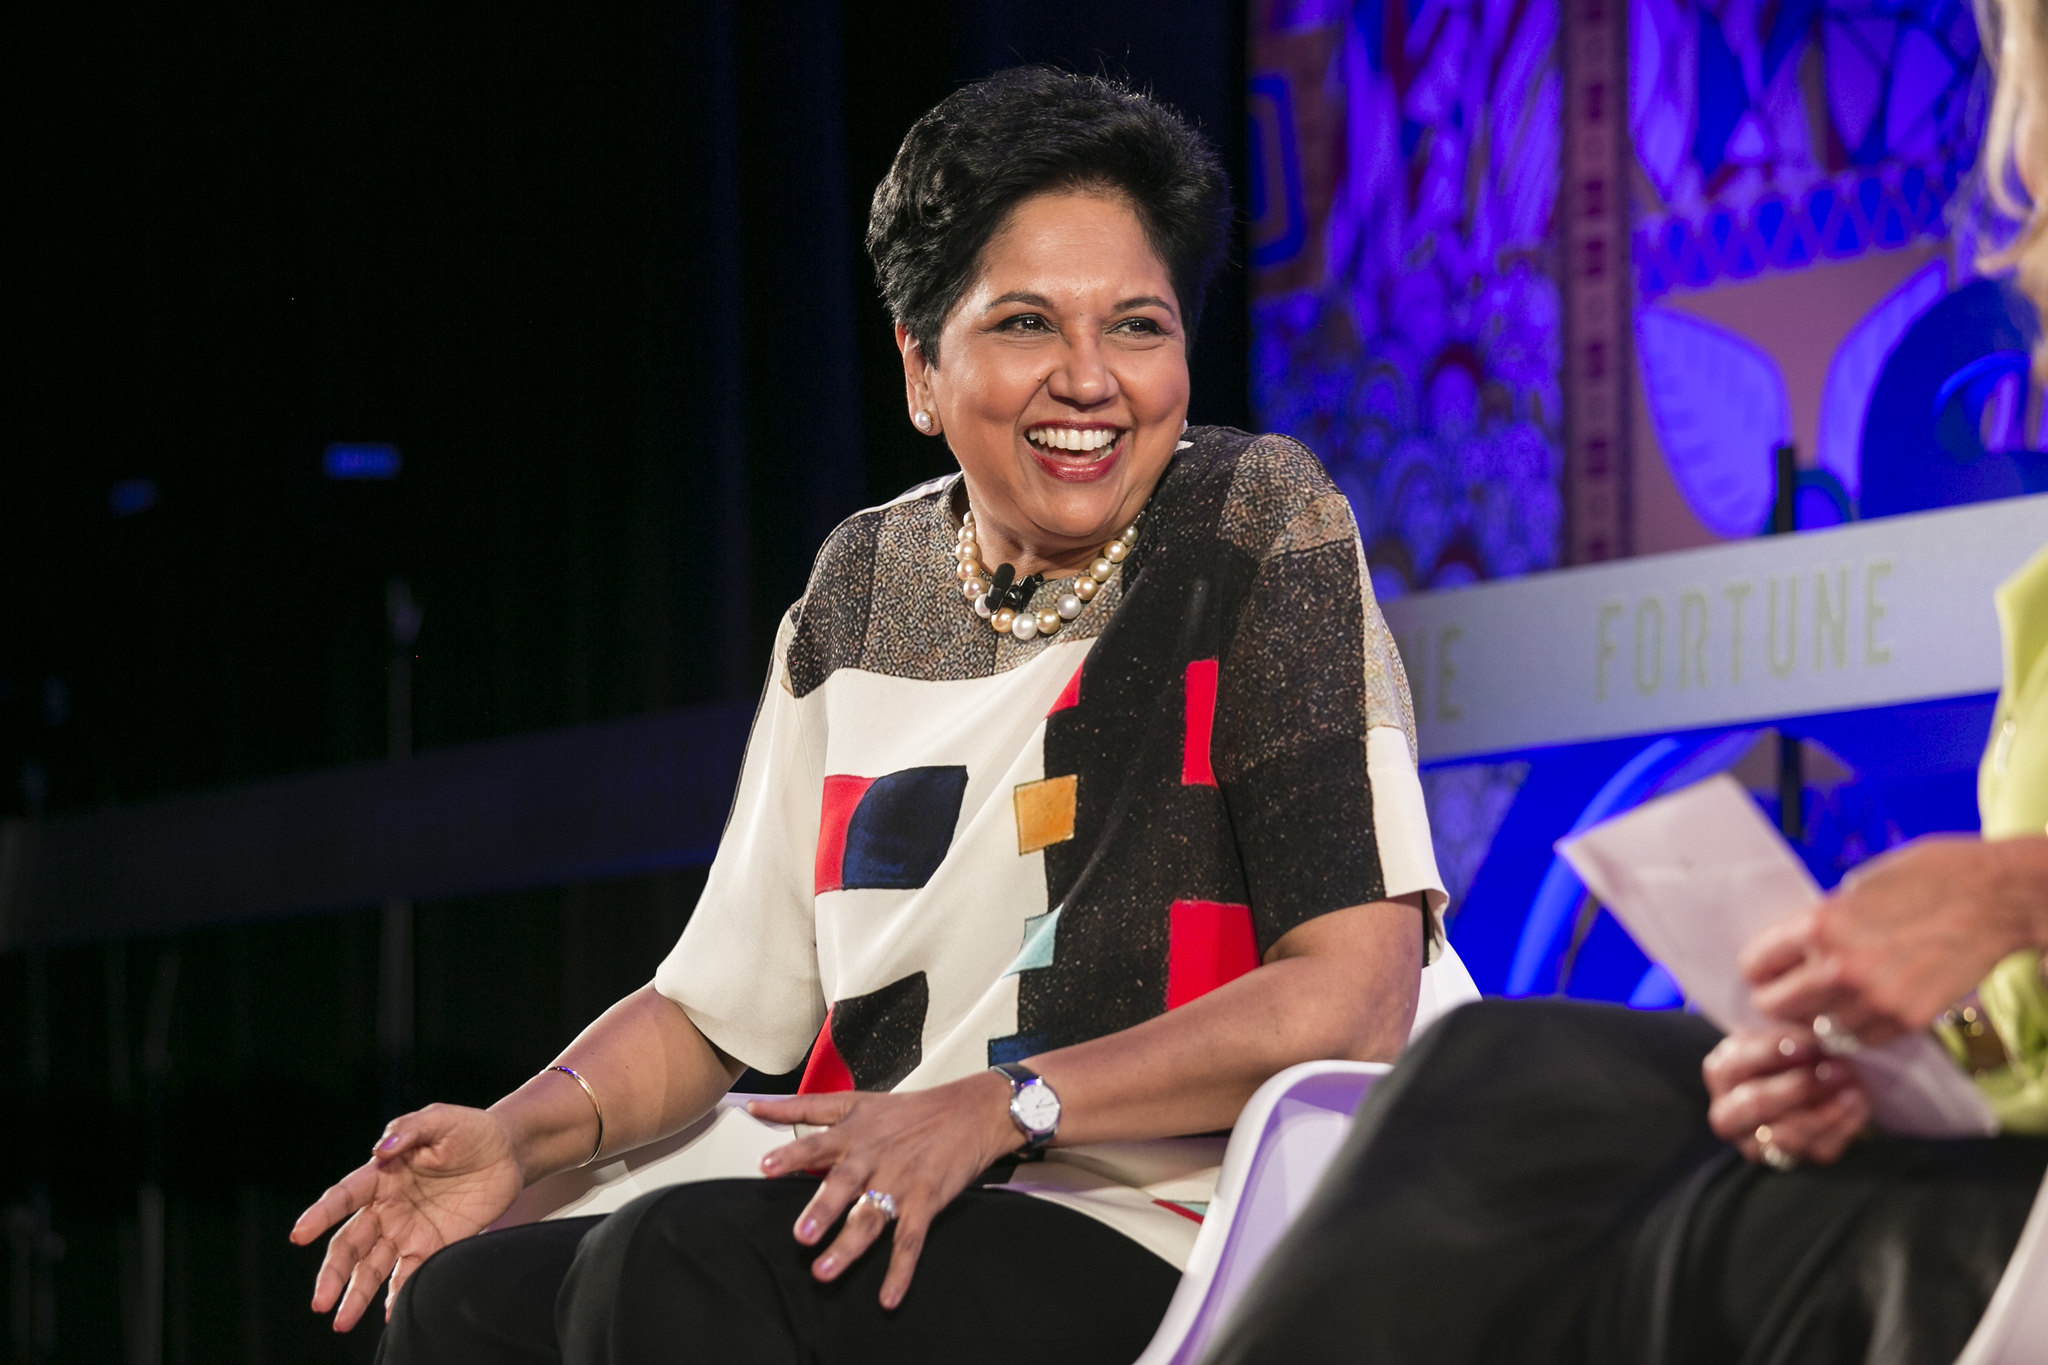 Indra Nooyi speaking at Fortune's Most Powerful Women International Summit in Toronto.